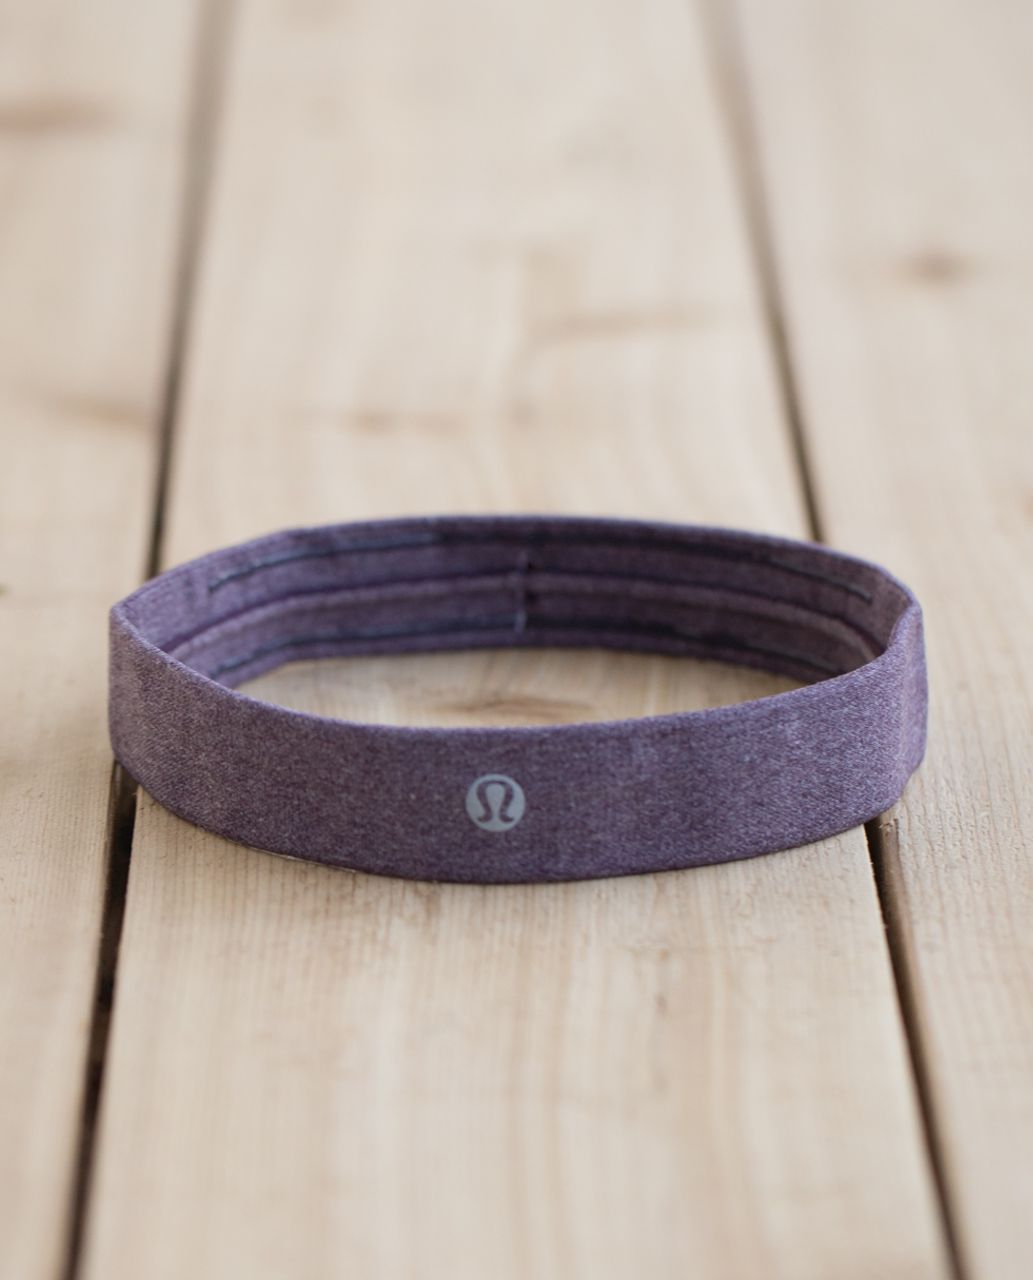 Lululemon Cardio Cross Trainer Headband - Heathered Black Cherry